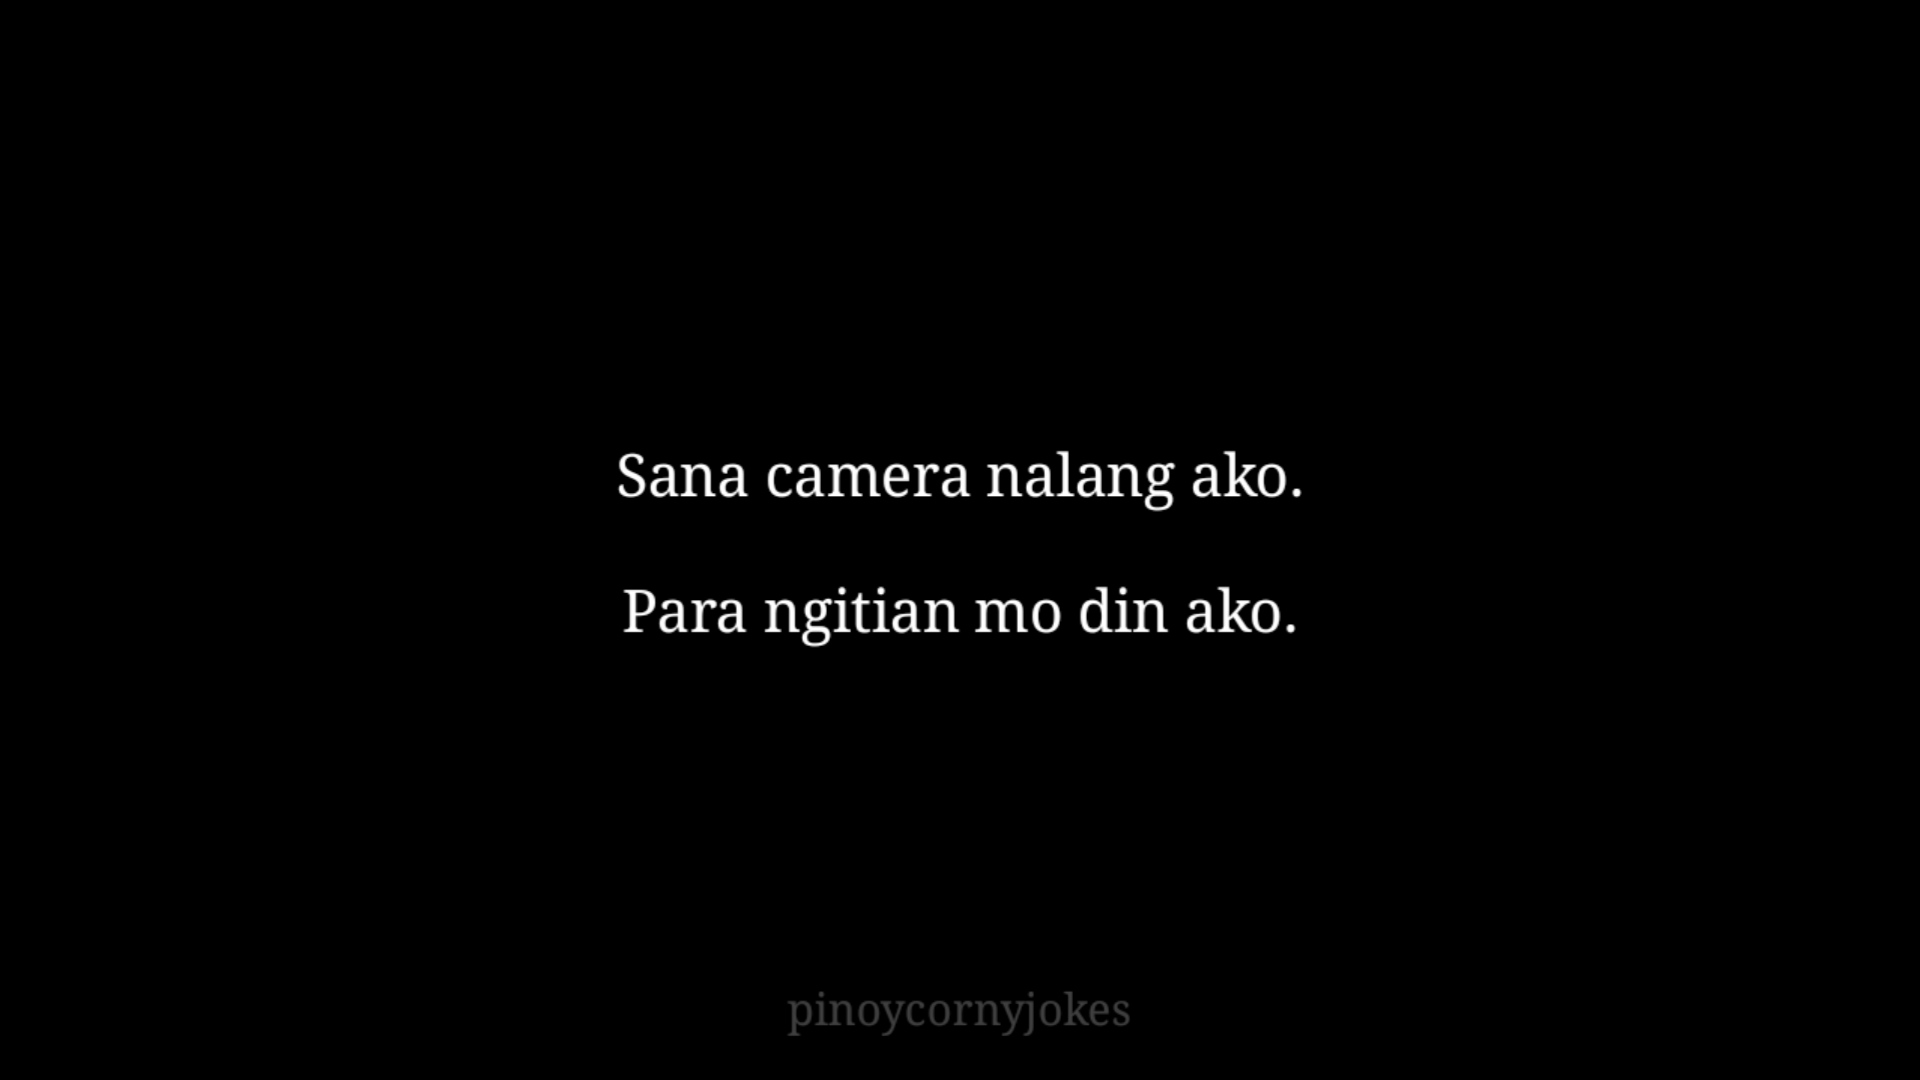 Camera Pinoy Pick Up Lines